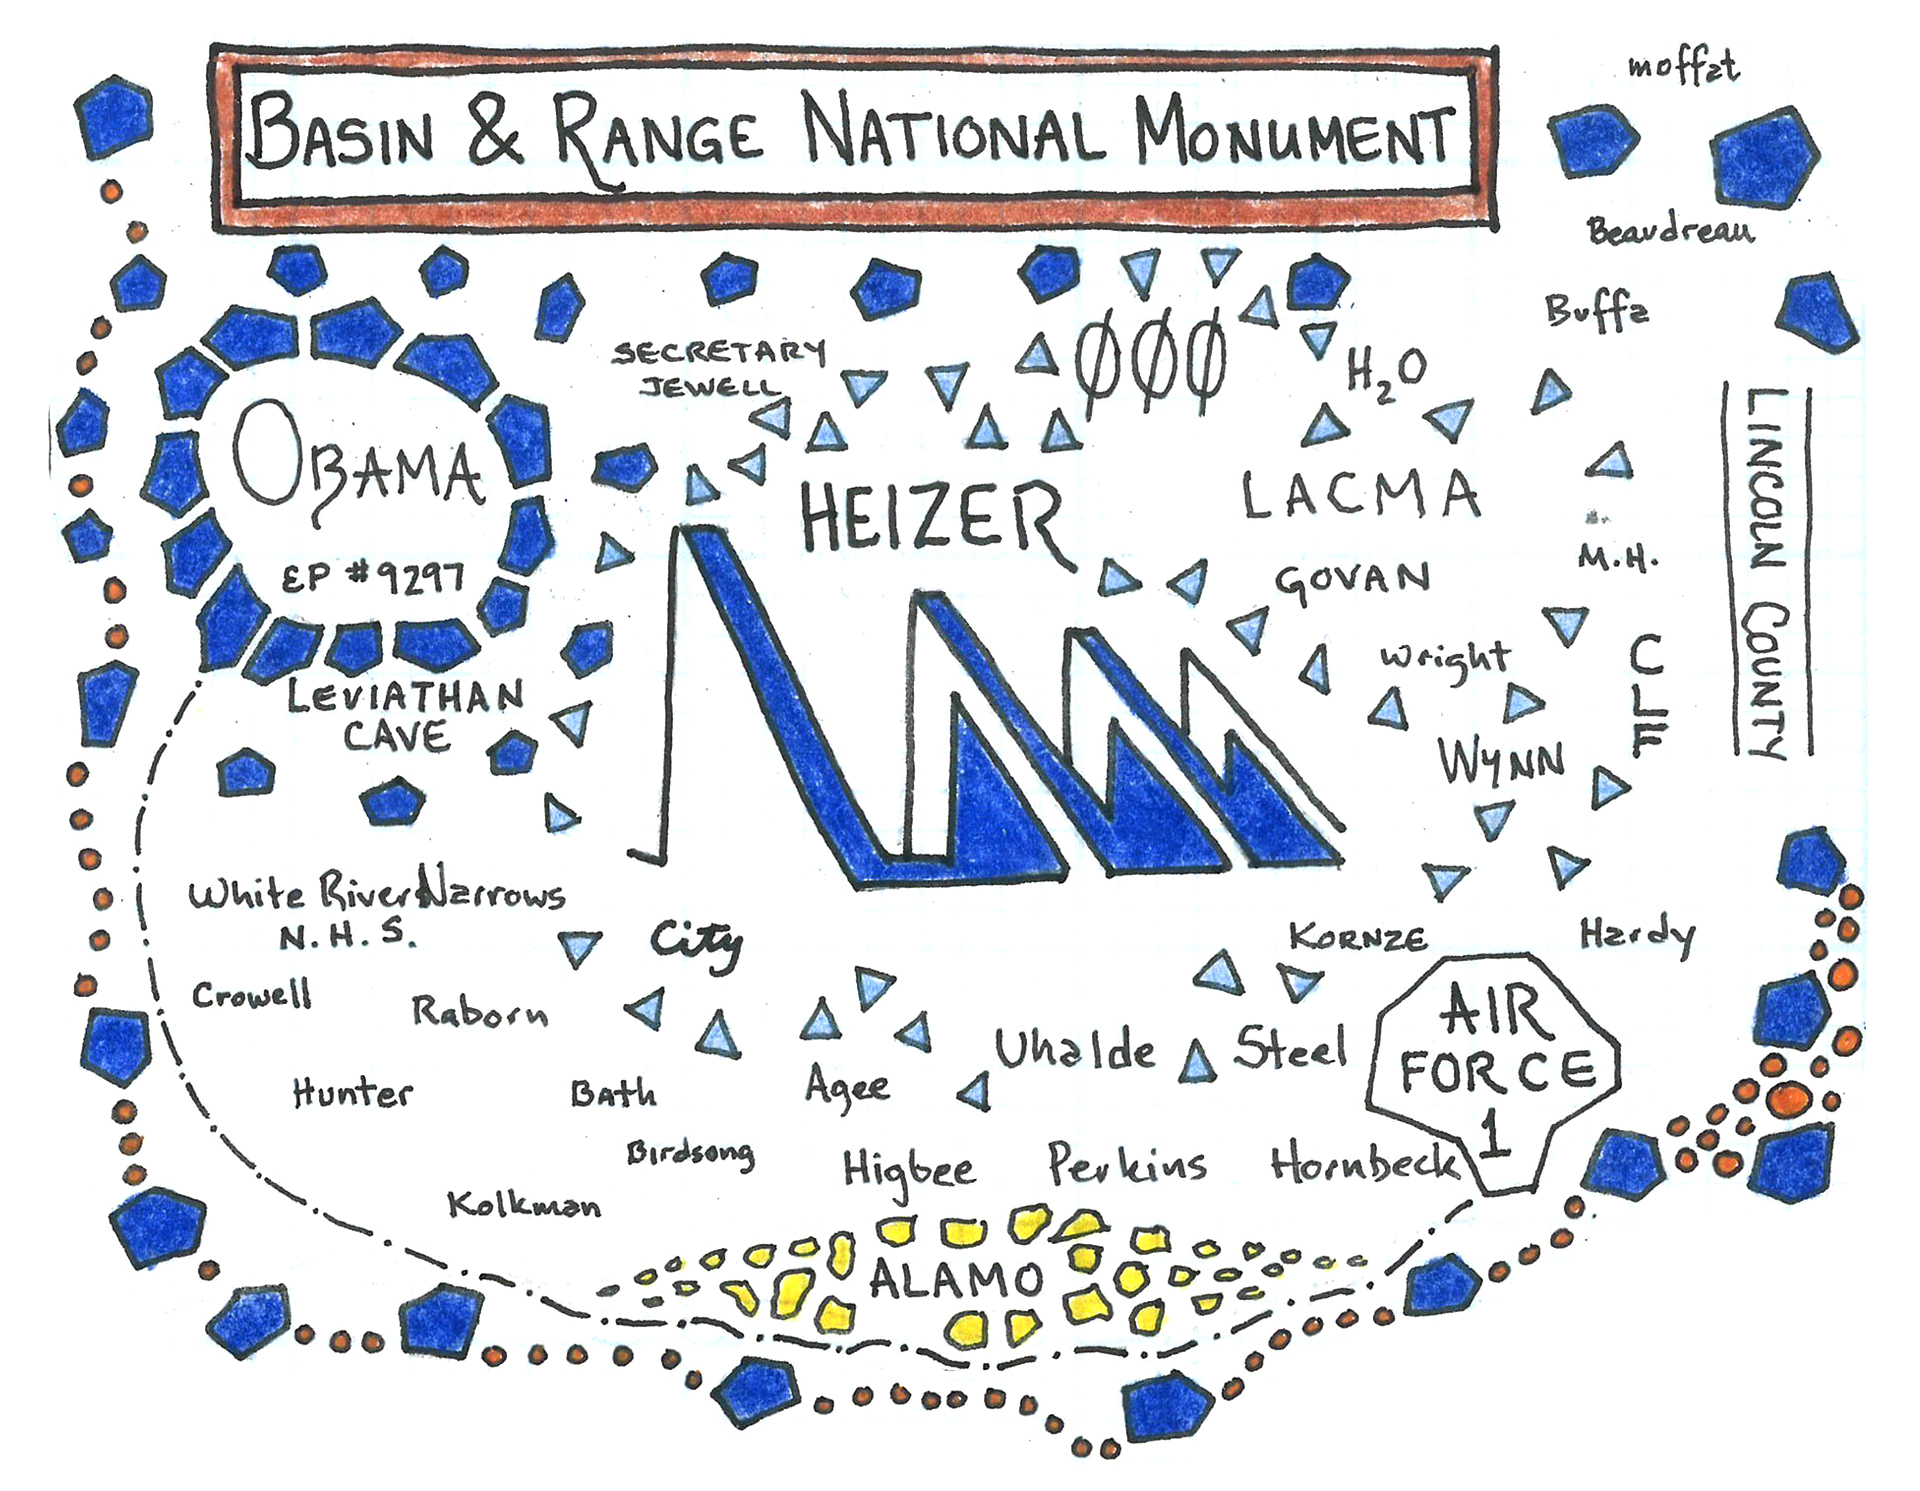 """The """"Basin and Range National Monument"""" panel represents what it took to protect the area where artist Michael Heizer's 'City' installation was built.  